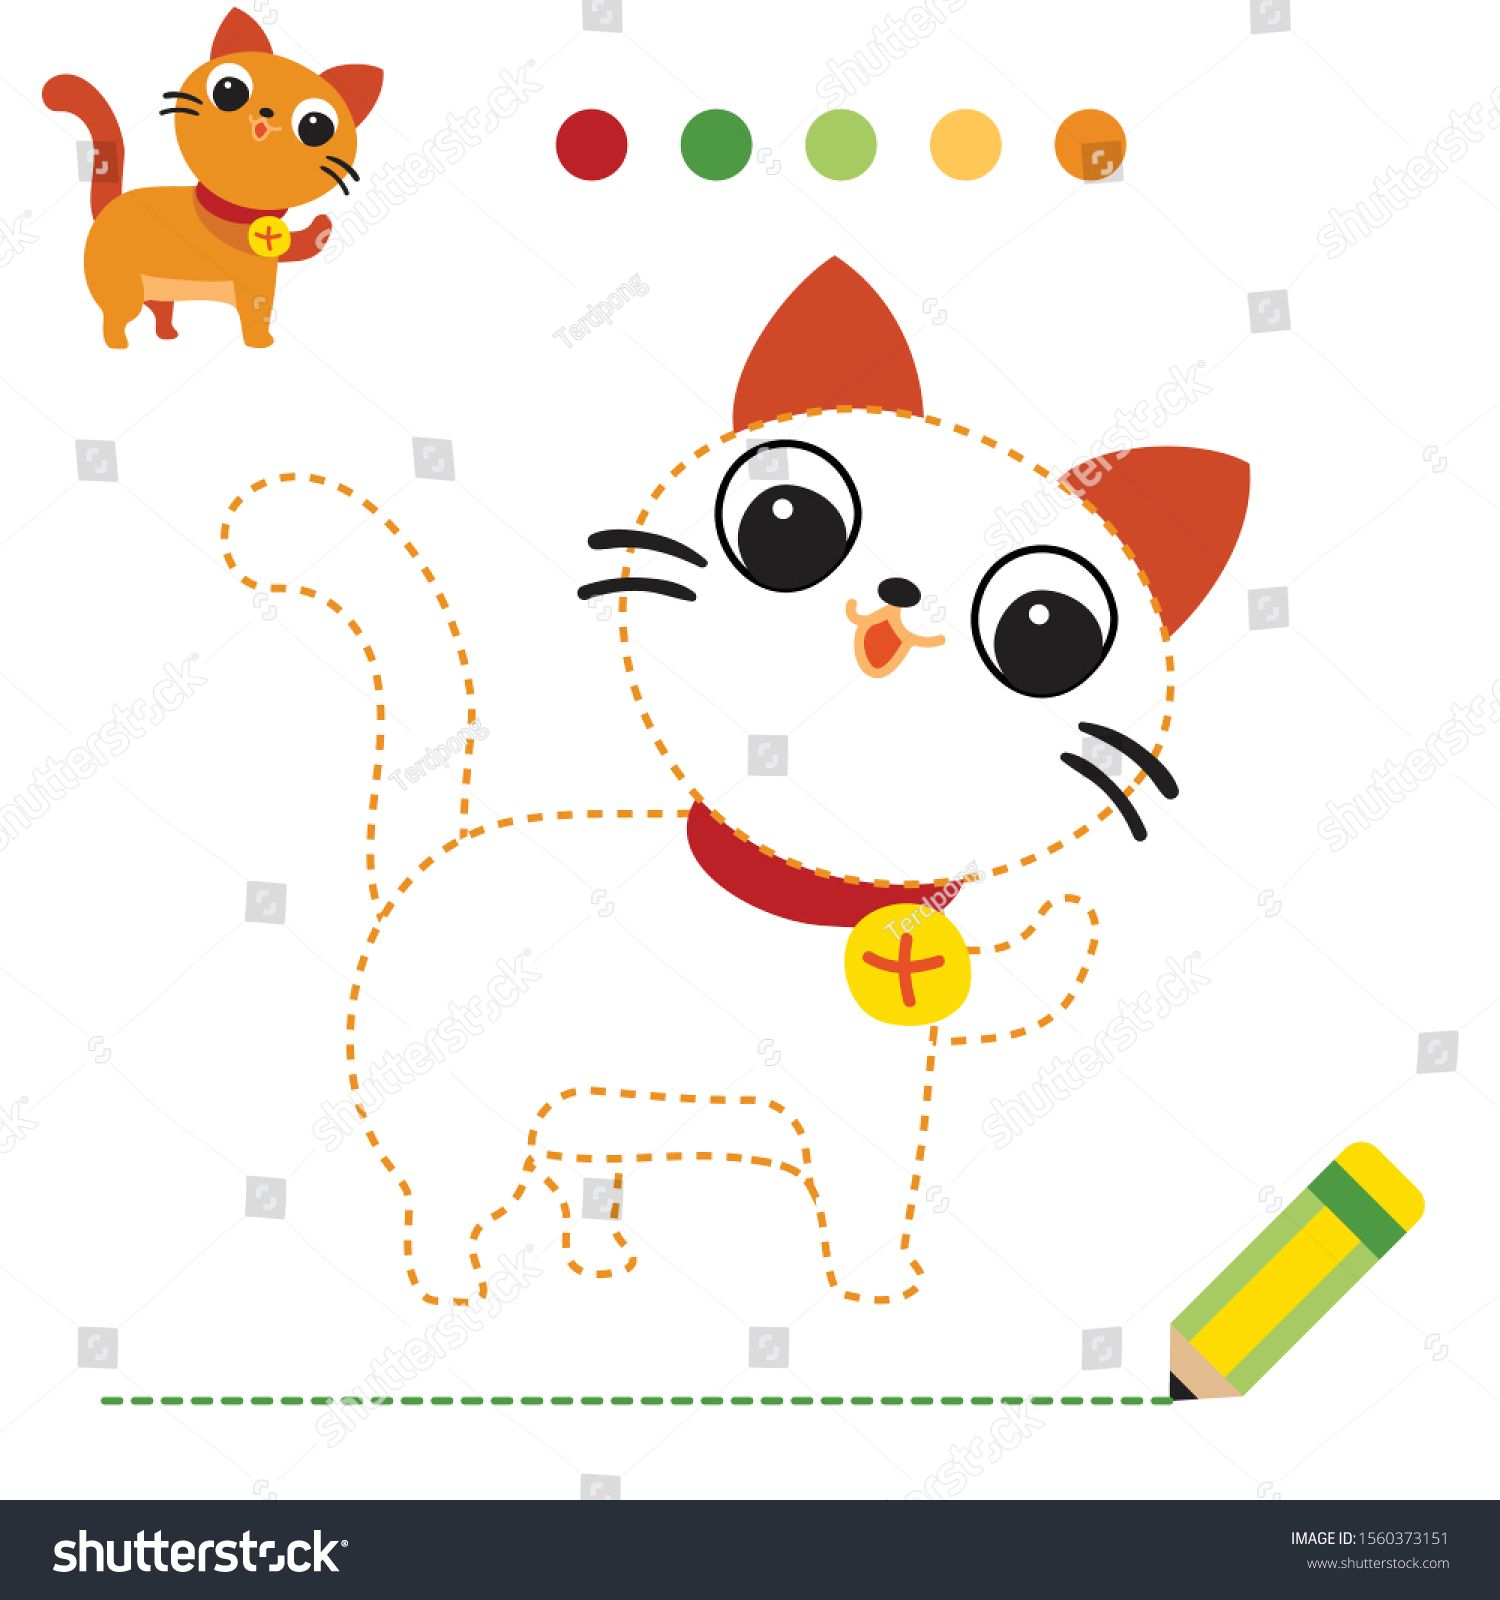 Cat Worksheet Vector Design Dash Game